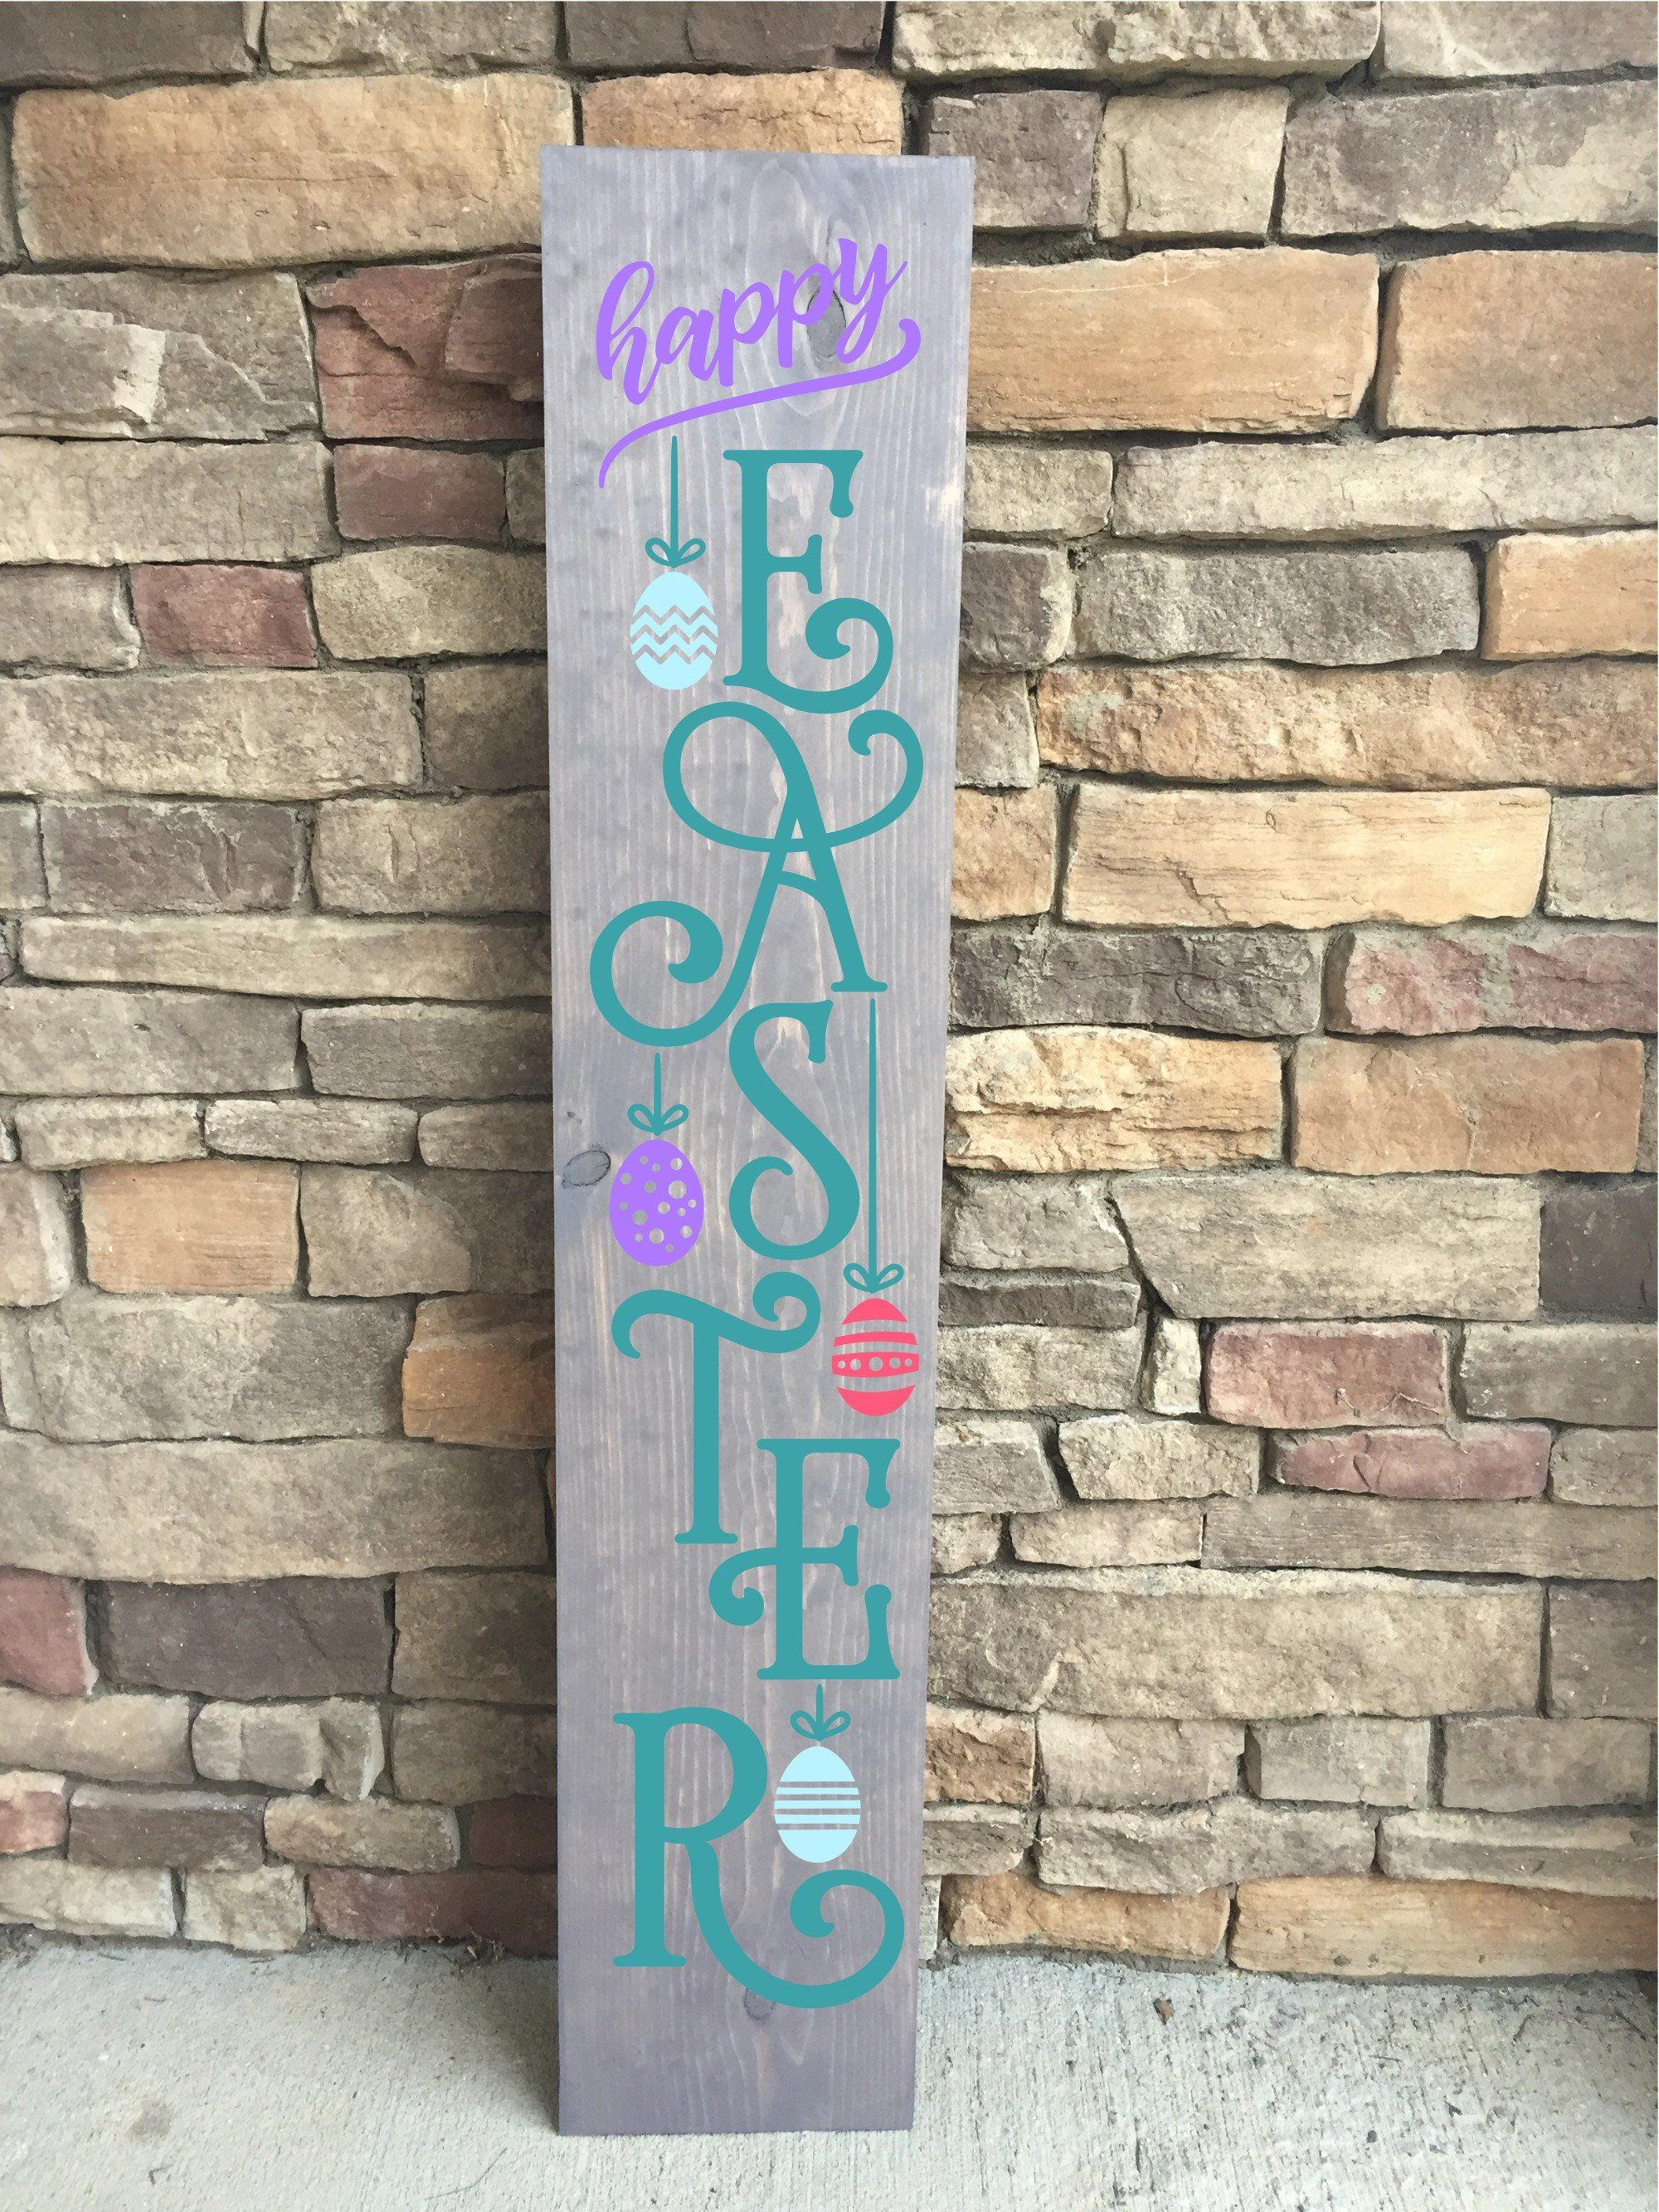 Easter Porch Sign Spring Porch Sign Easter Front Porch Sign Happy Easter Porch Sign He Is Risen Porch Sign Easter Door Decor Porch Signs Easter Wood Signs